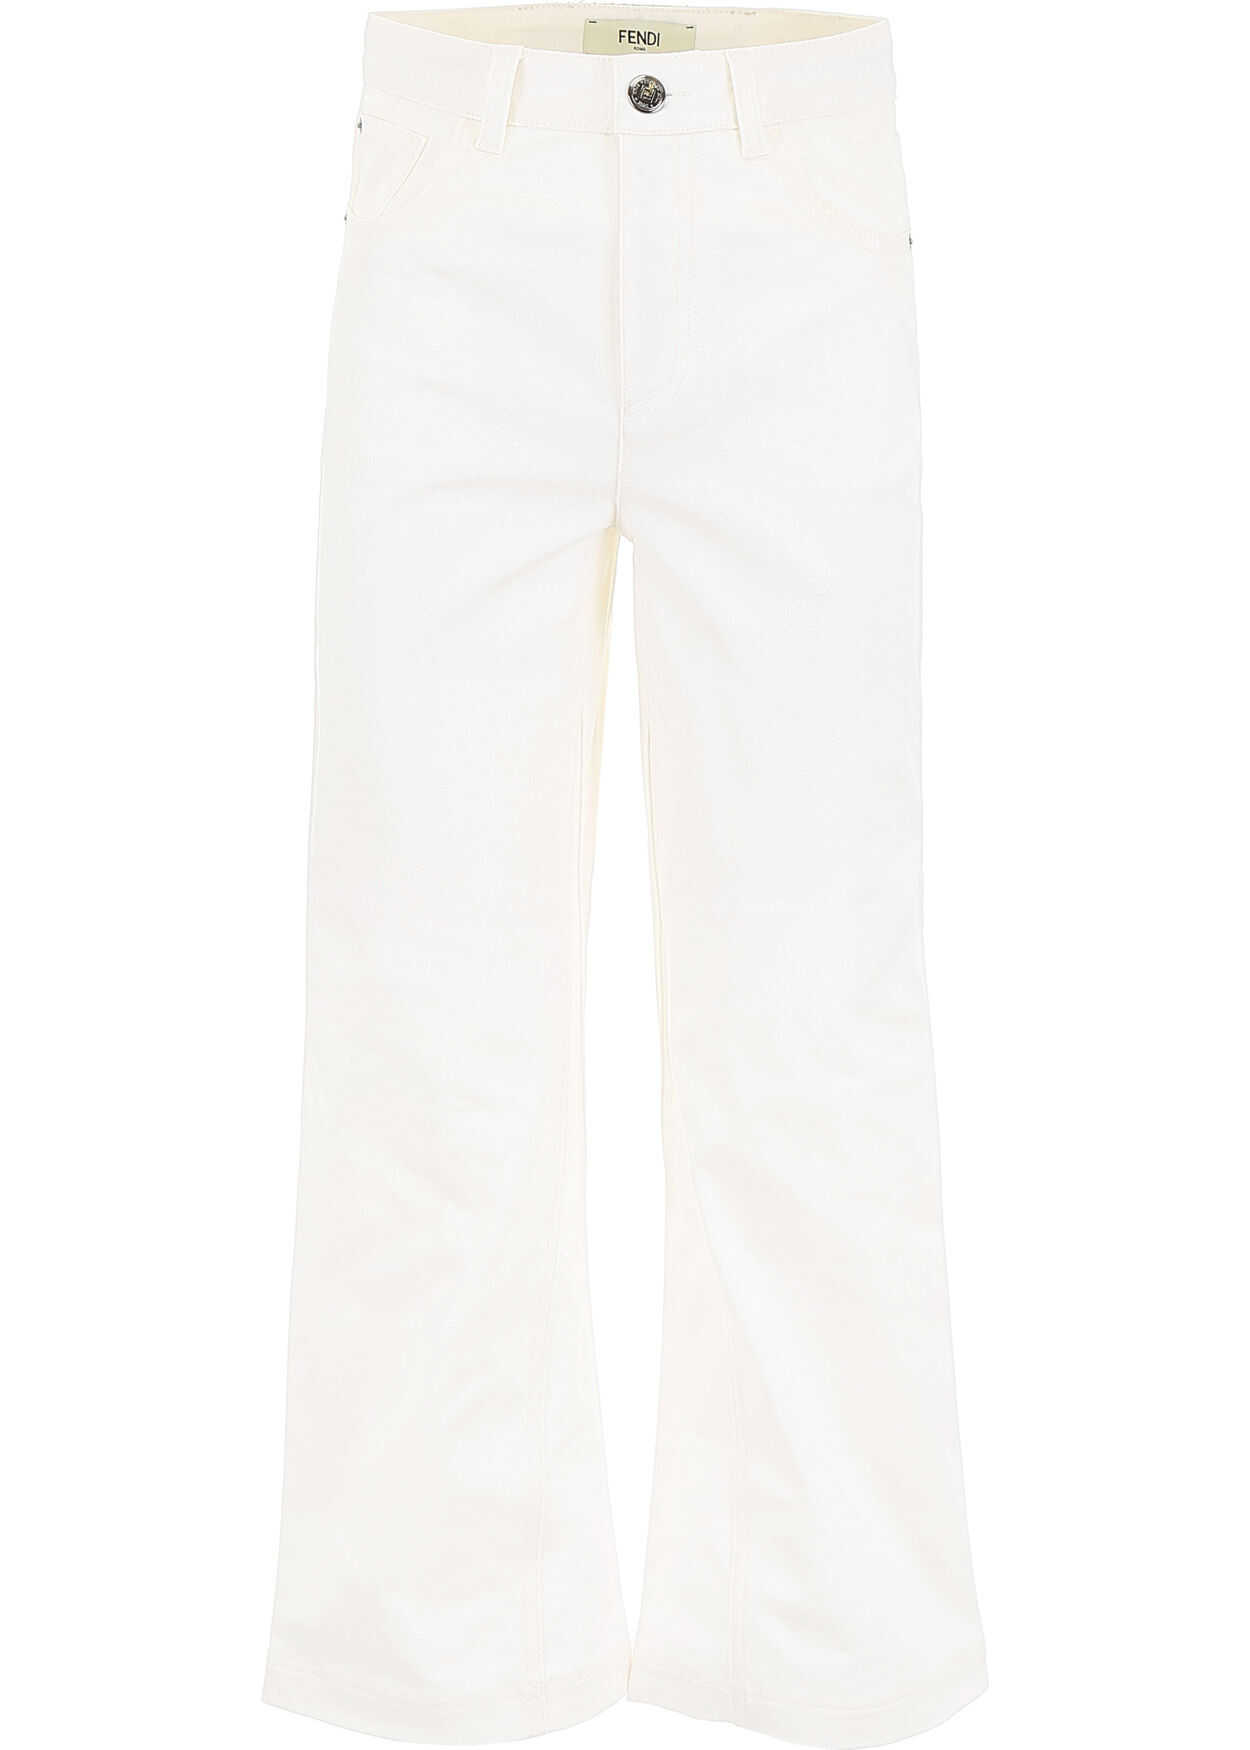 Fendi Cropped Jeans WHITE